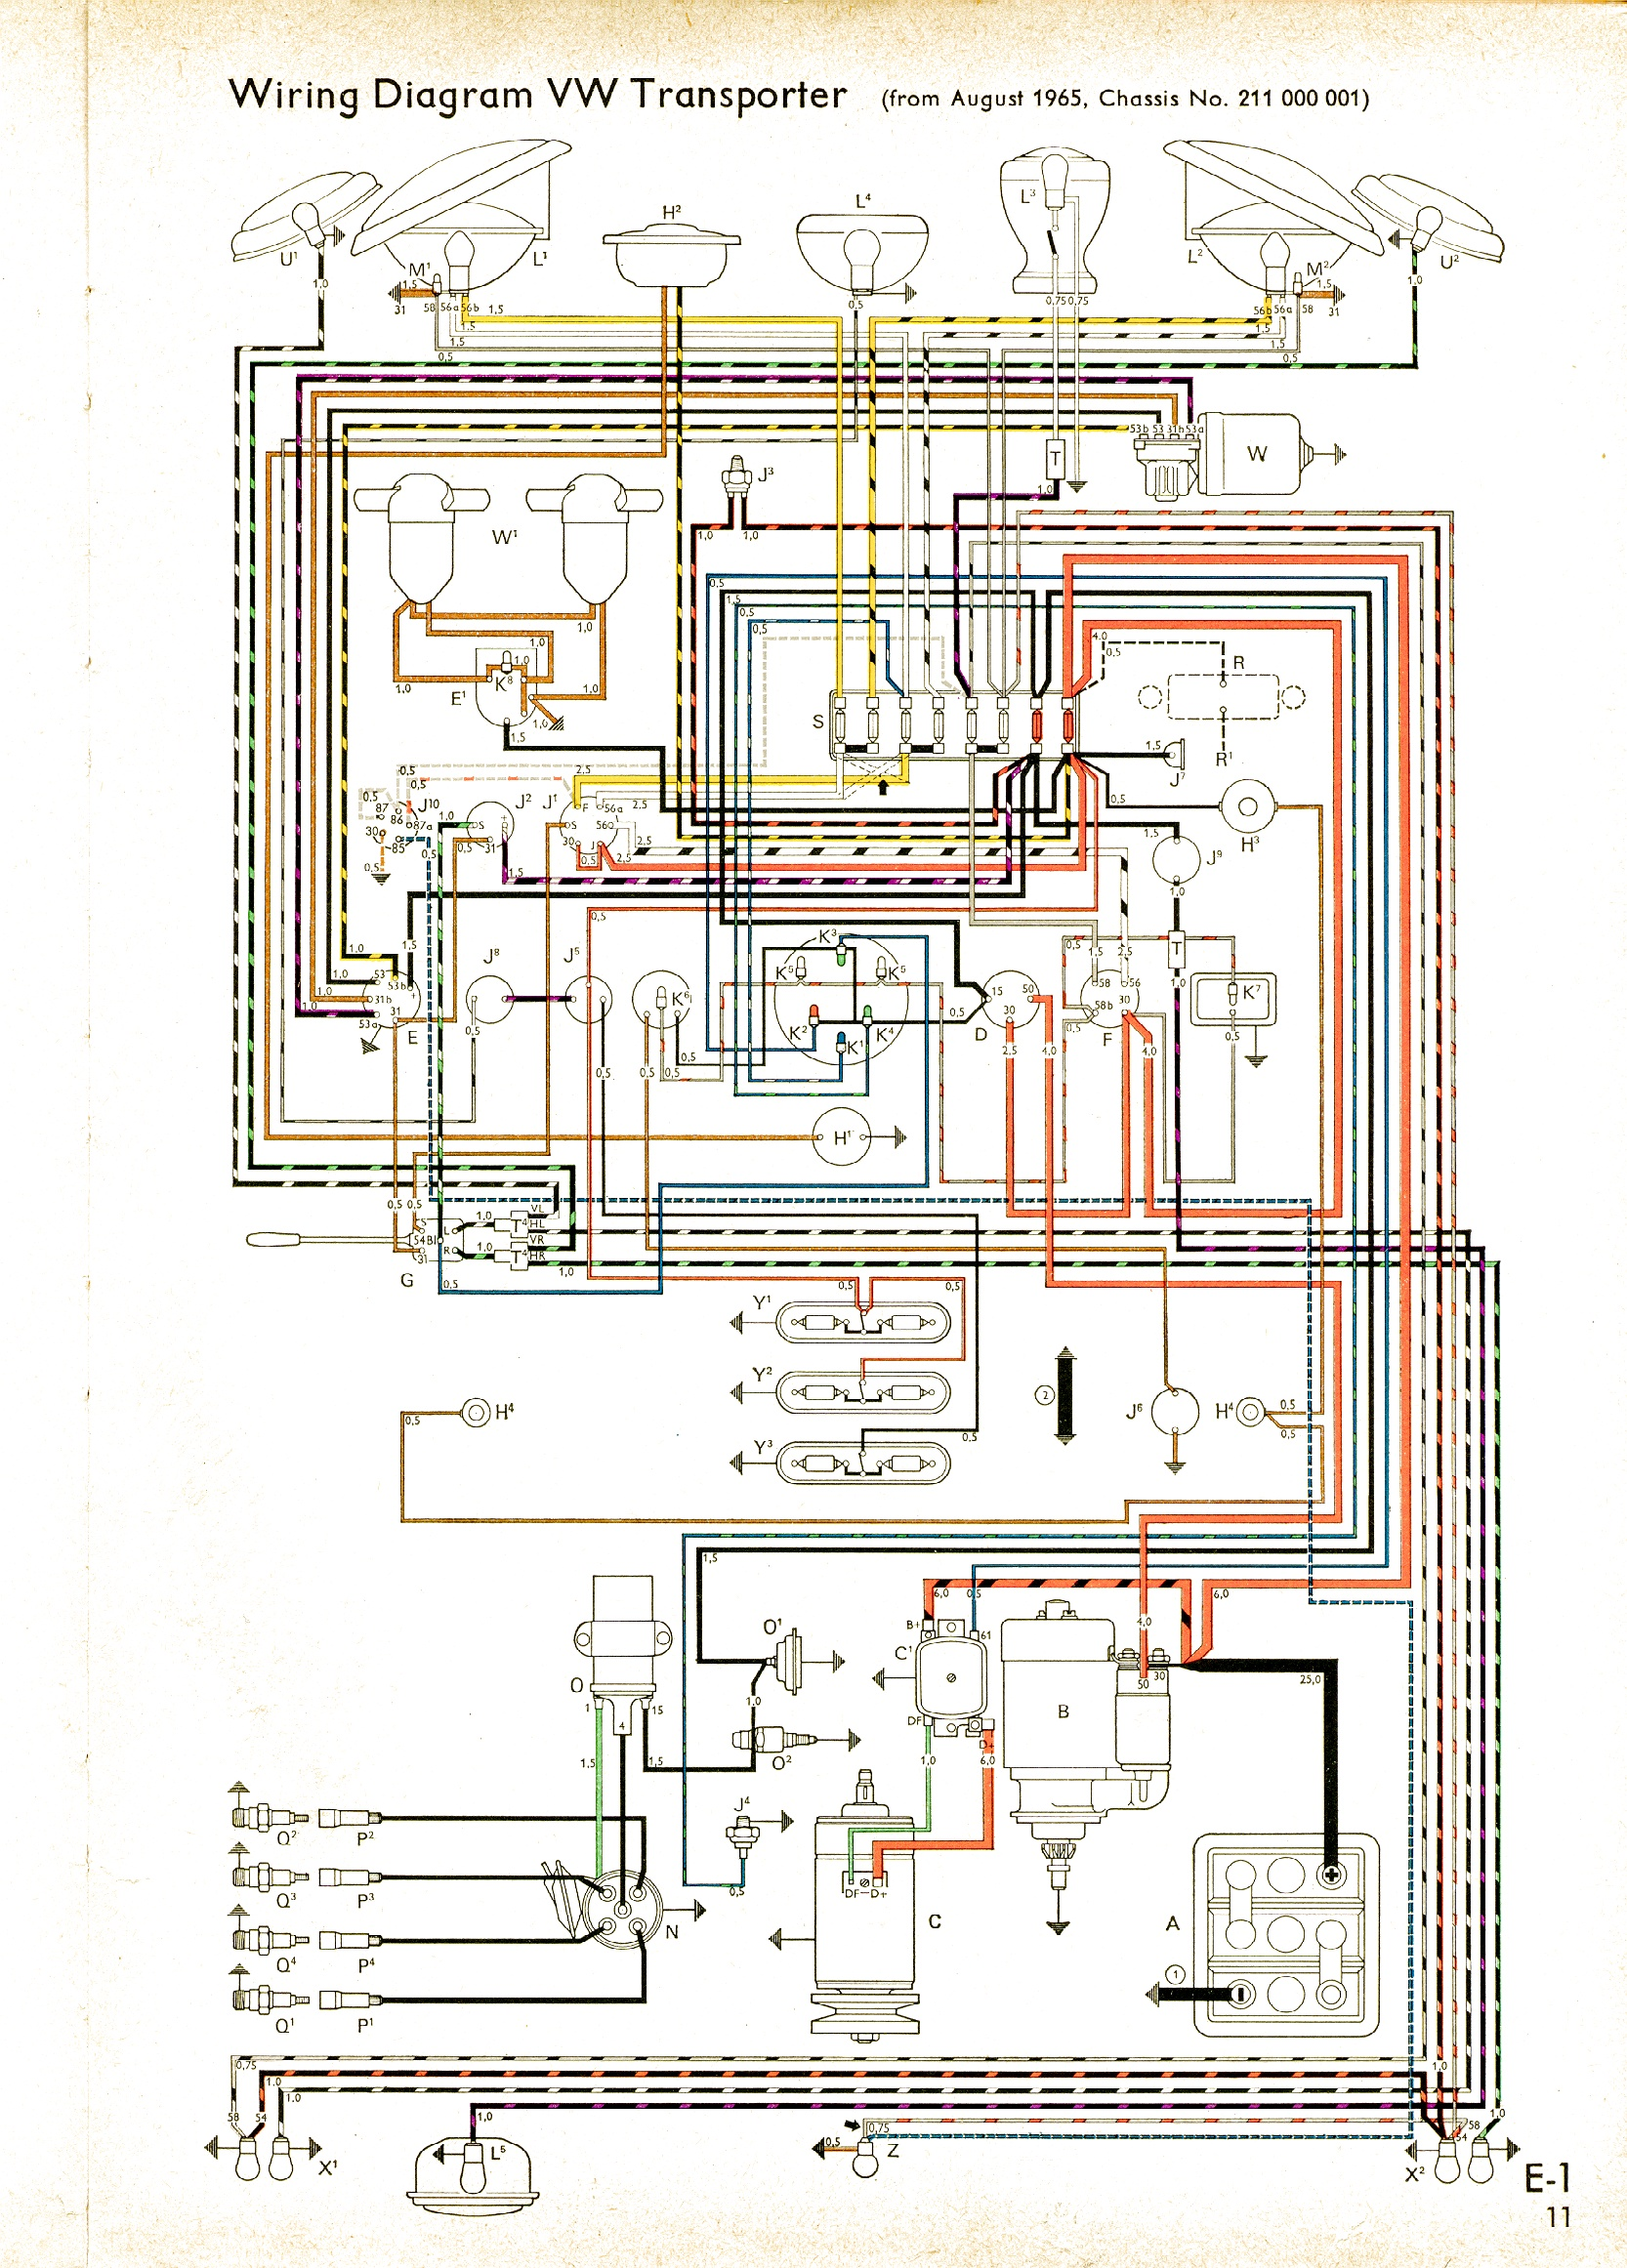 1967 vw beetle wiring diagram RIDAwNe 1967 vw bug wiring diagram on 1967 download wirning diagrams vw bug wiring diagram at cos-gaming.co